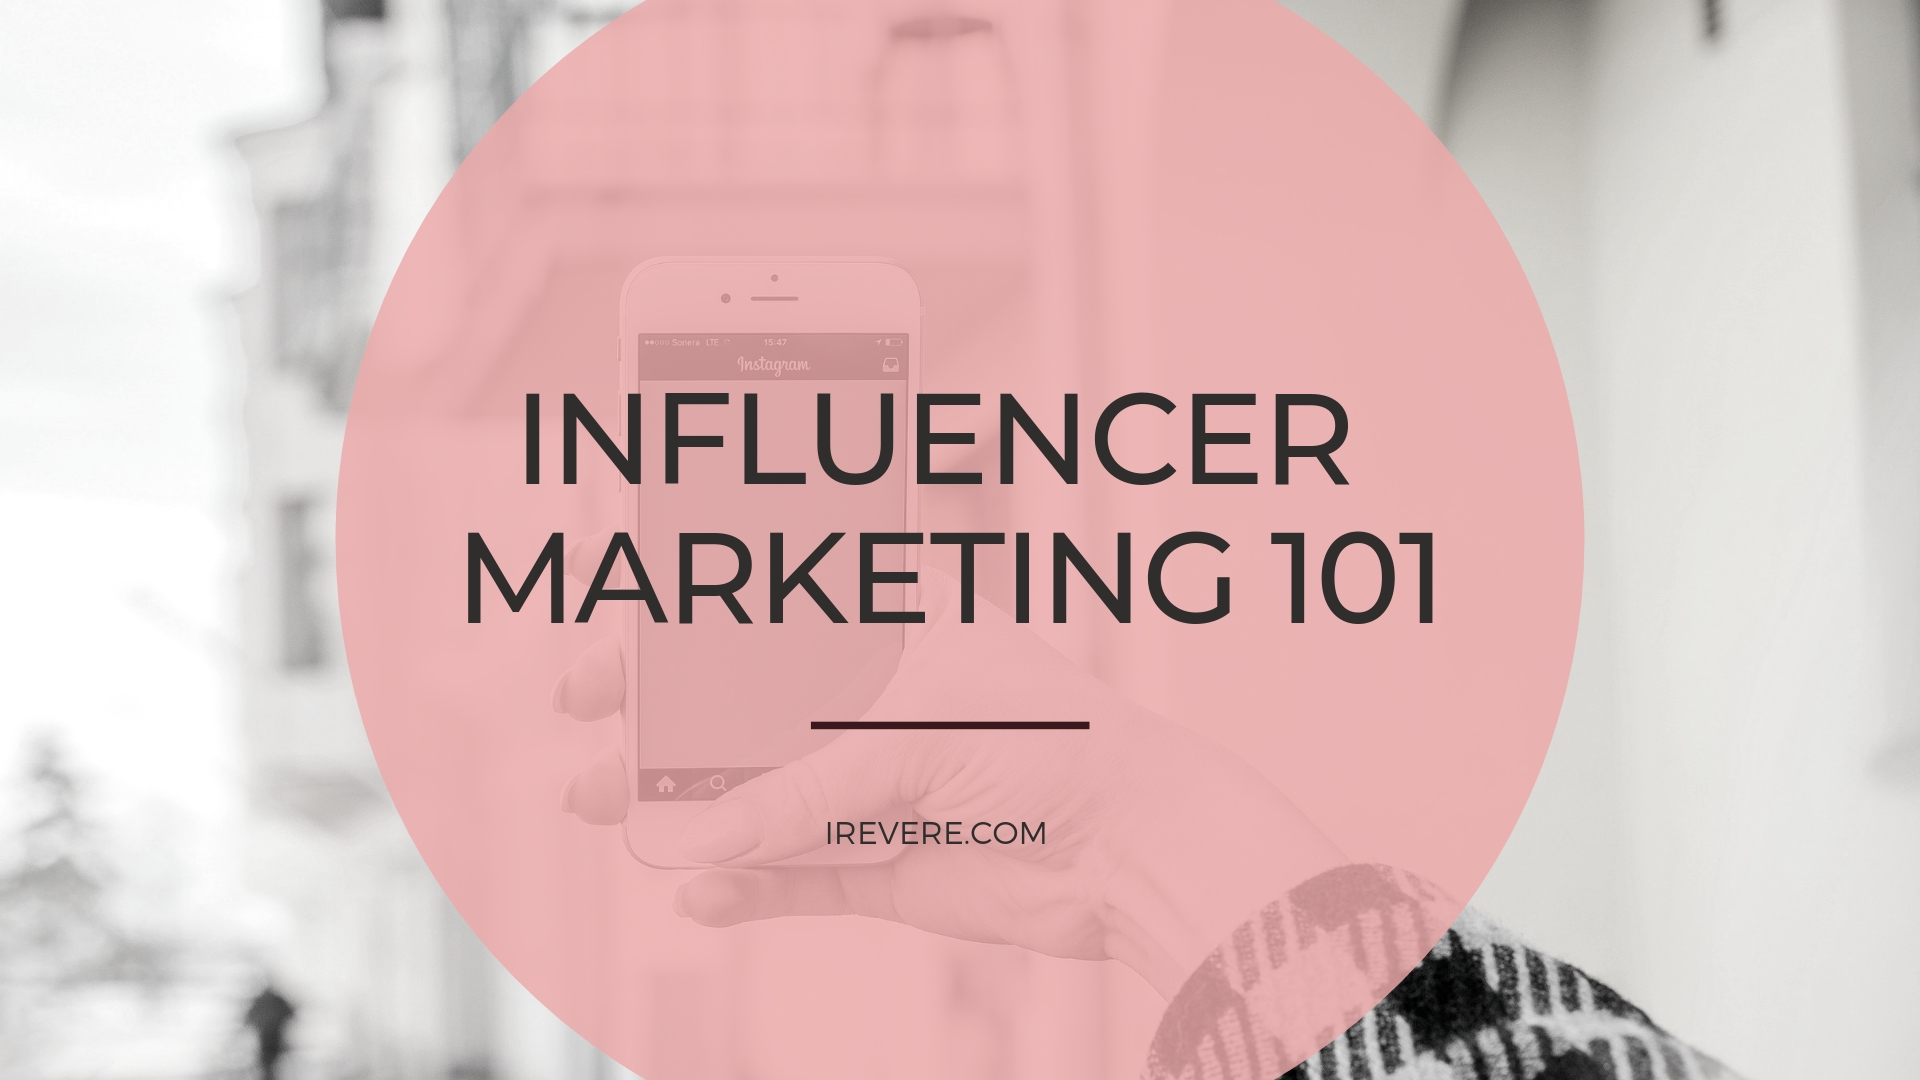 Influencer Marketing 101